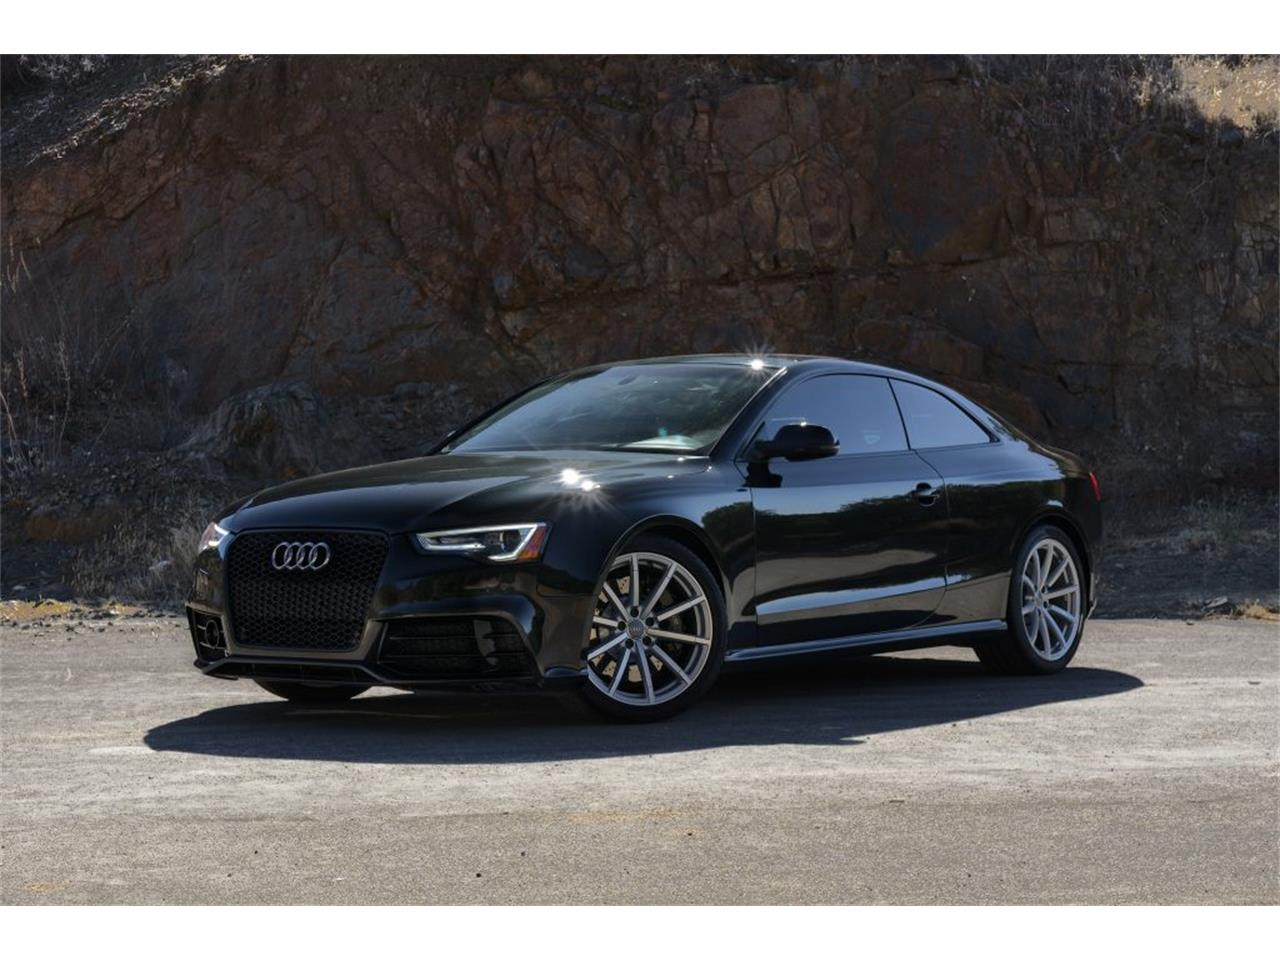 2013 Audi Rs5 For Sale In California